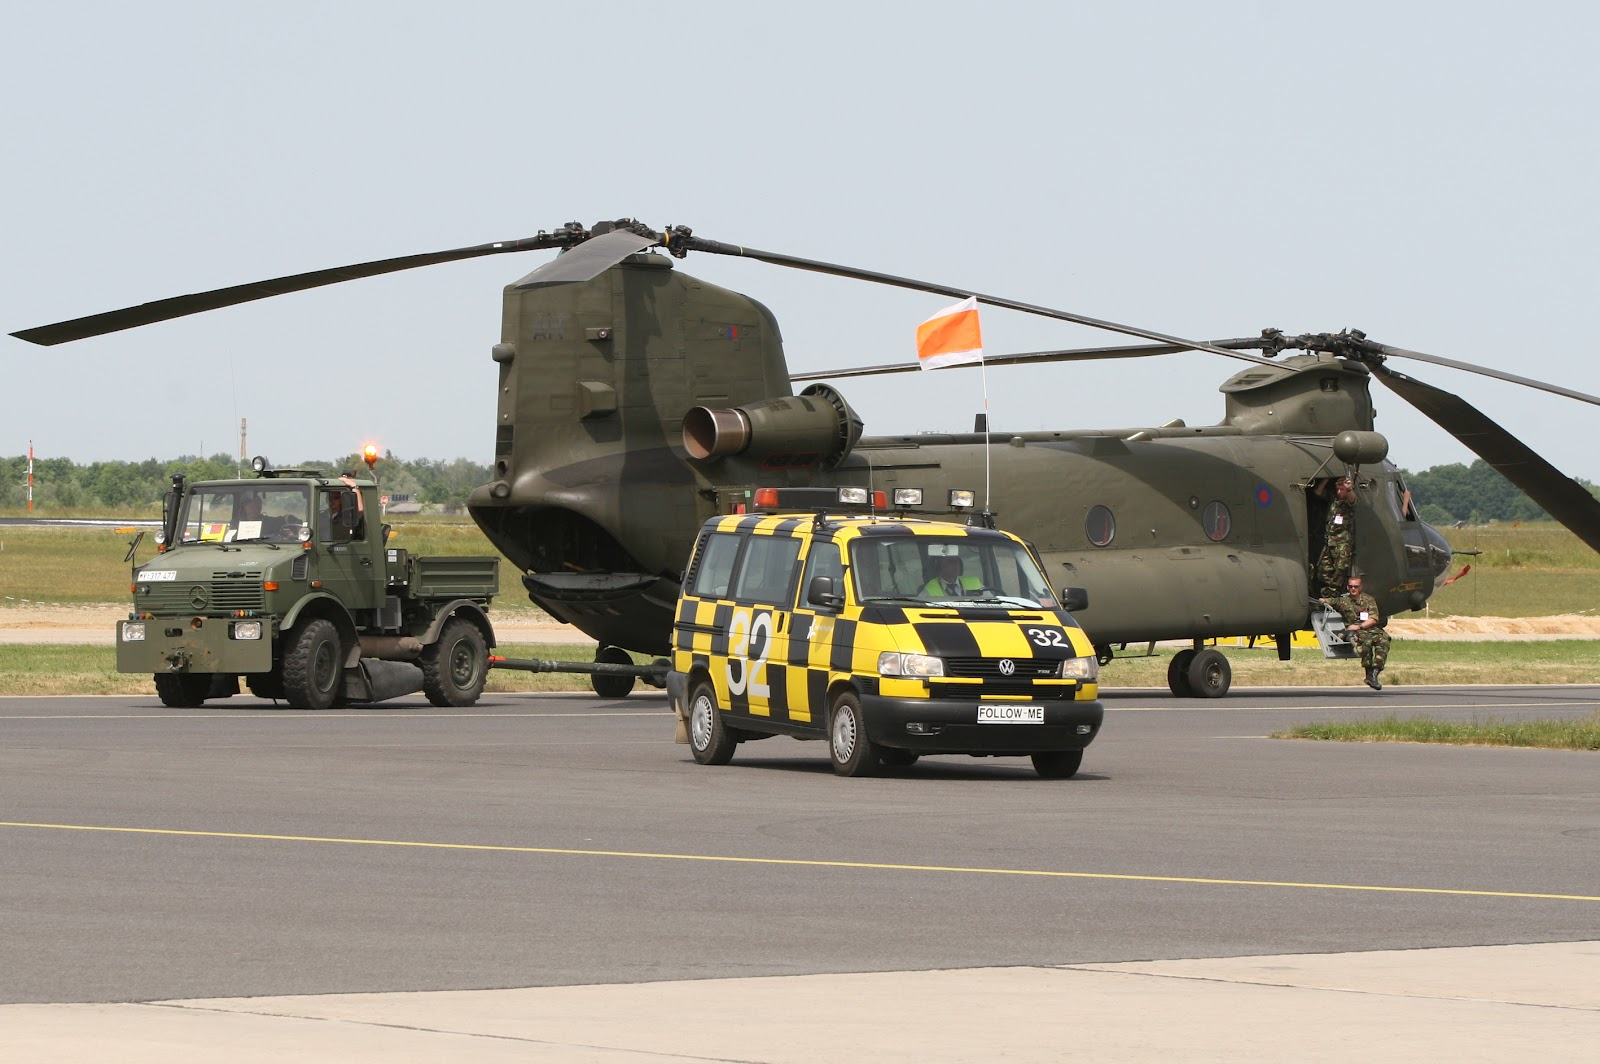 http://1.bp.blogspot.com/-qSDL-Ou2UlY/T_WkTVYy1aI/AAAAAAAAKiY/BKz_Gxlo9w8/s1600/boeing_ch47_chinook_royal_air_force.jpg